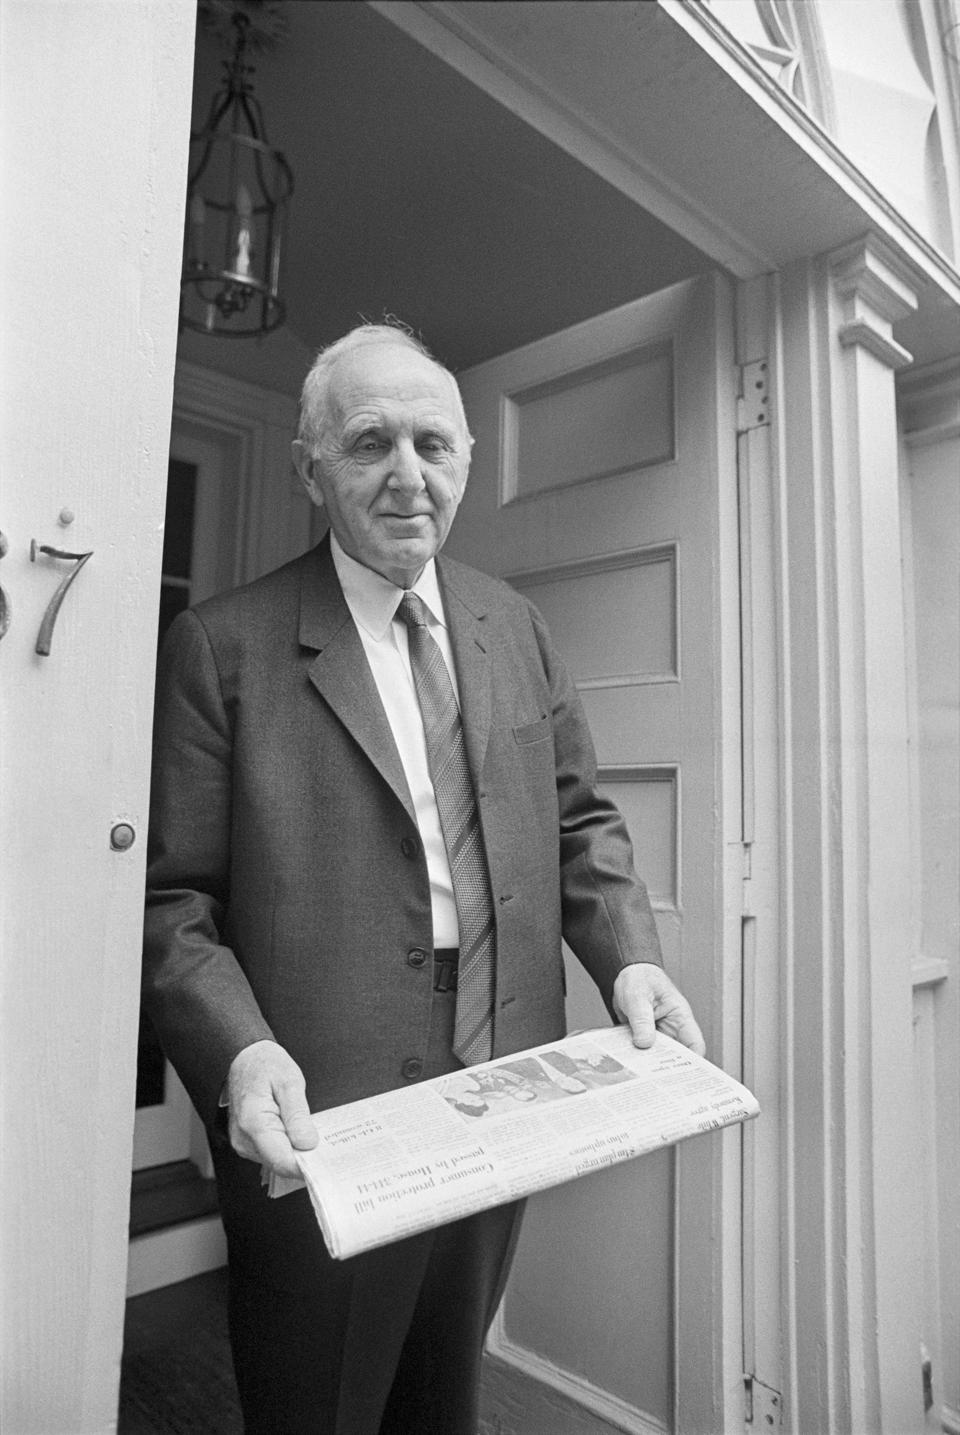 Simon Kuznets Standing in a Doorway